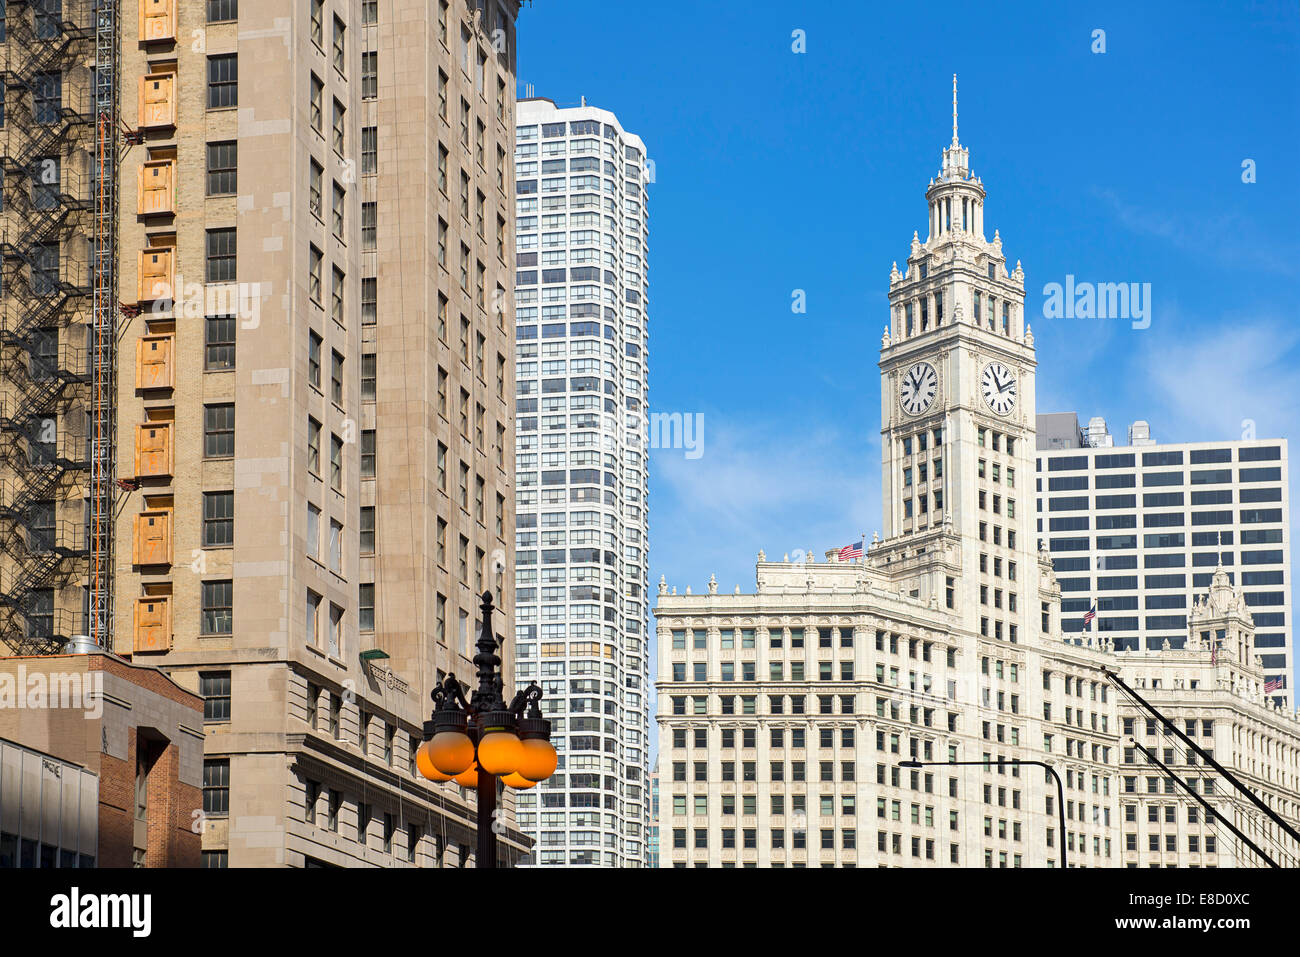 Wrigley Building Chicago Skyscrapers, High Rise - Stock Image